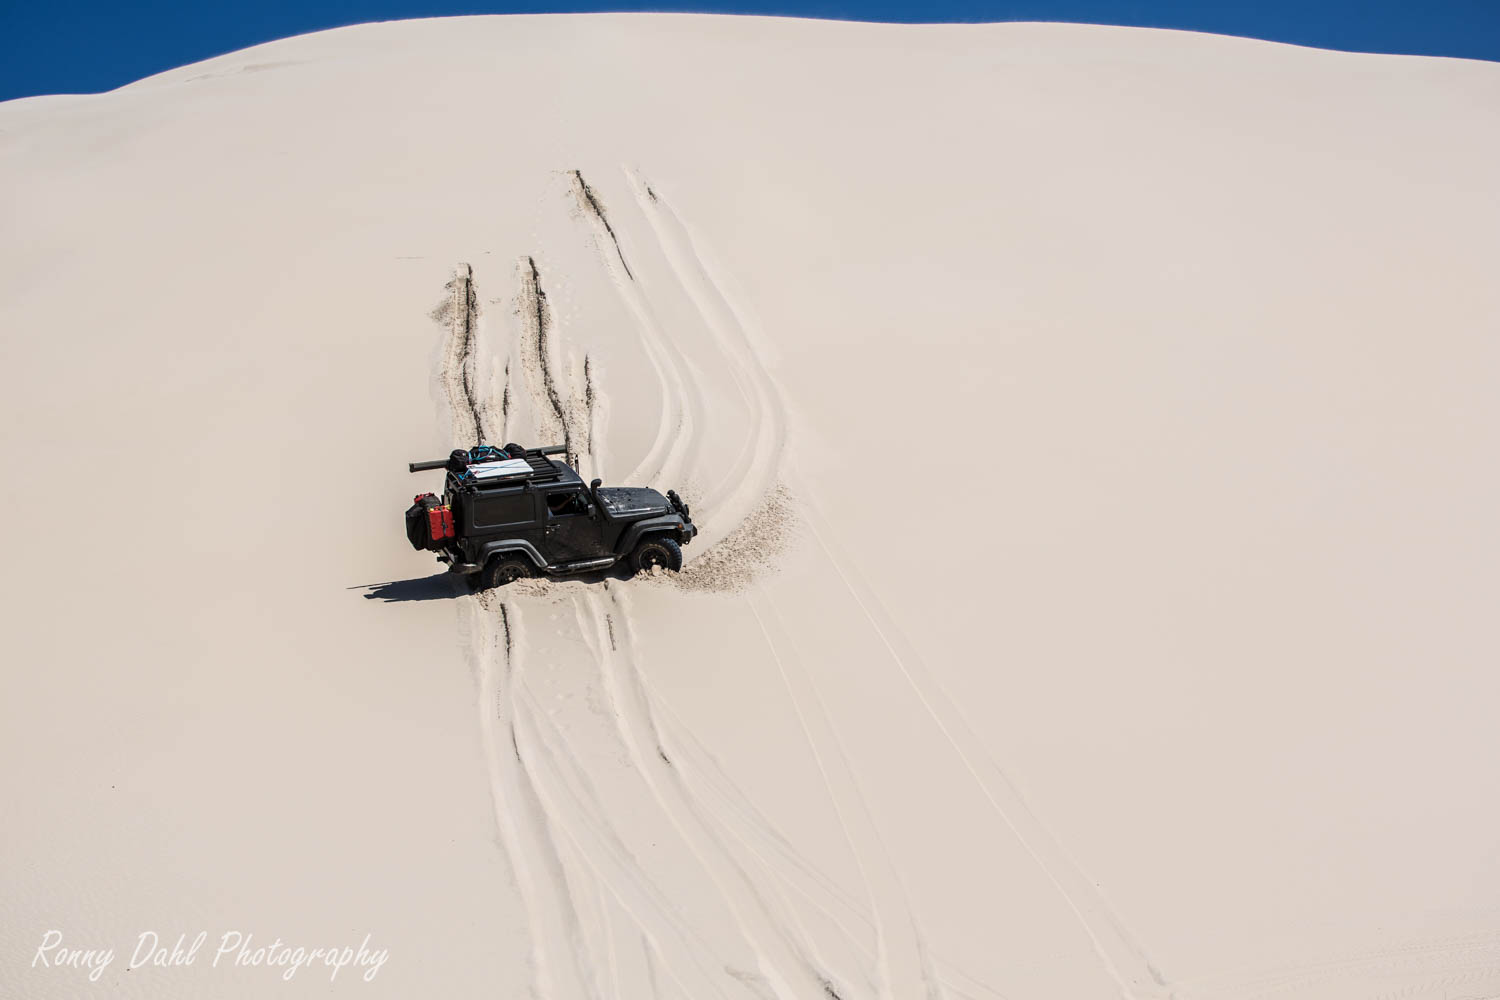 A Jeep Wrangler in trouble on a sand dune.